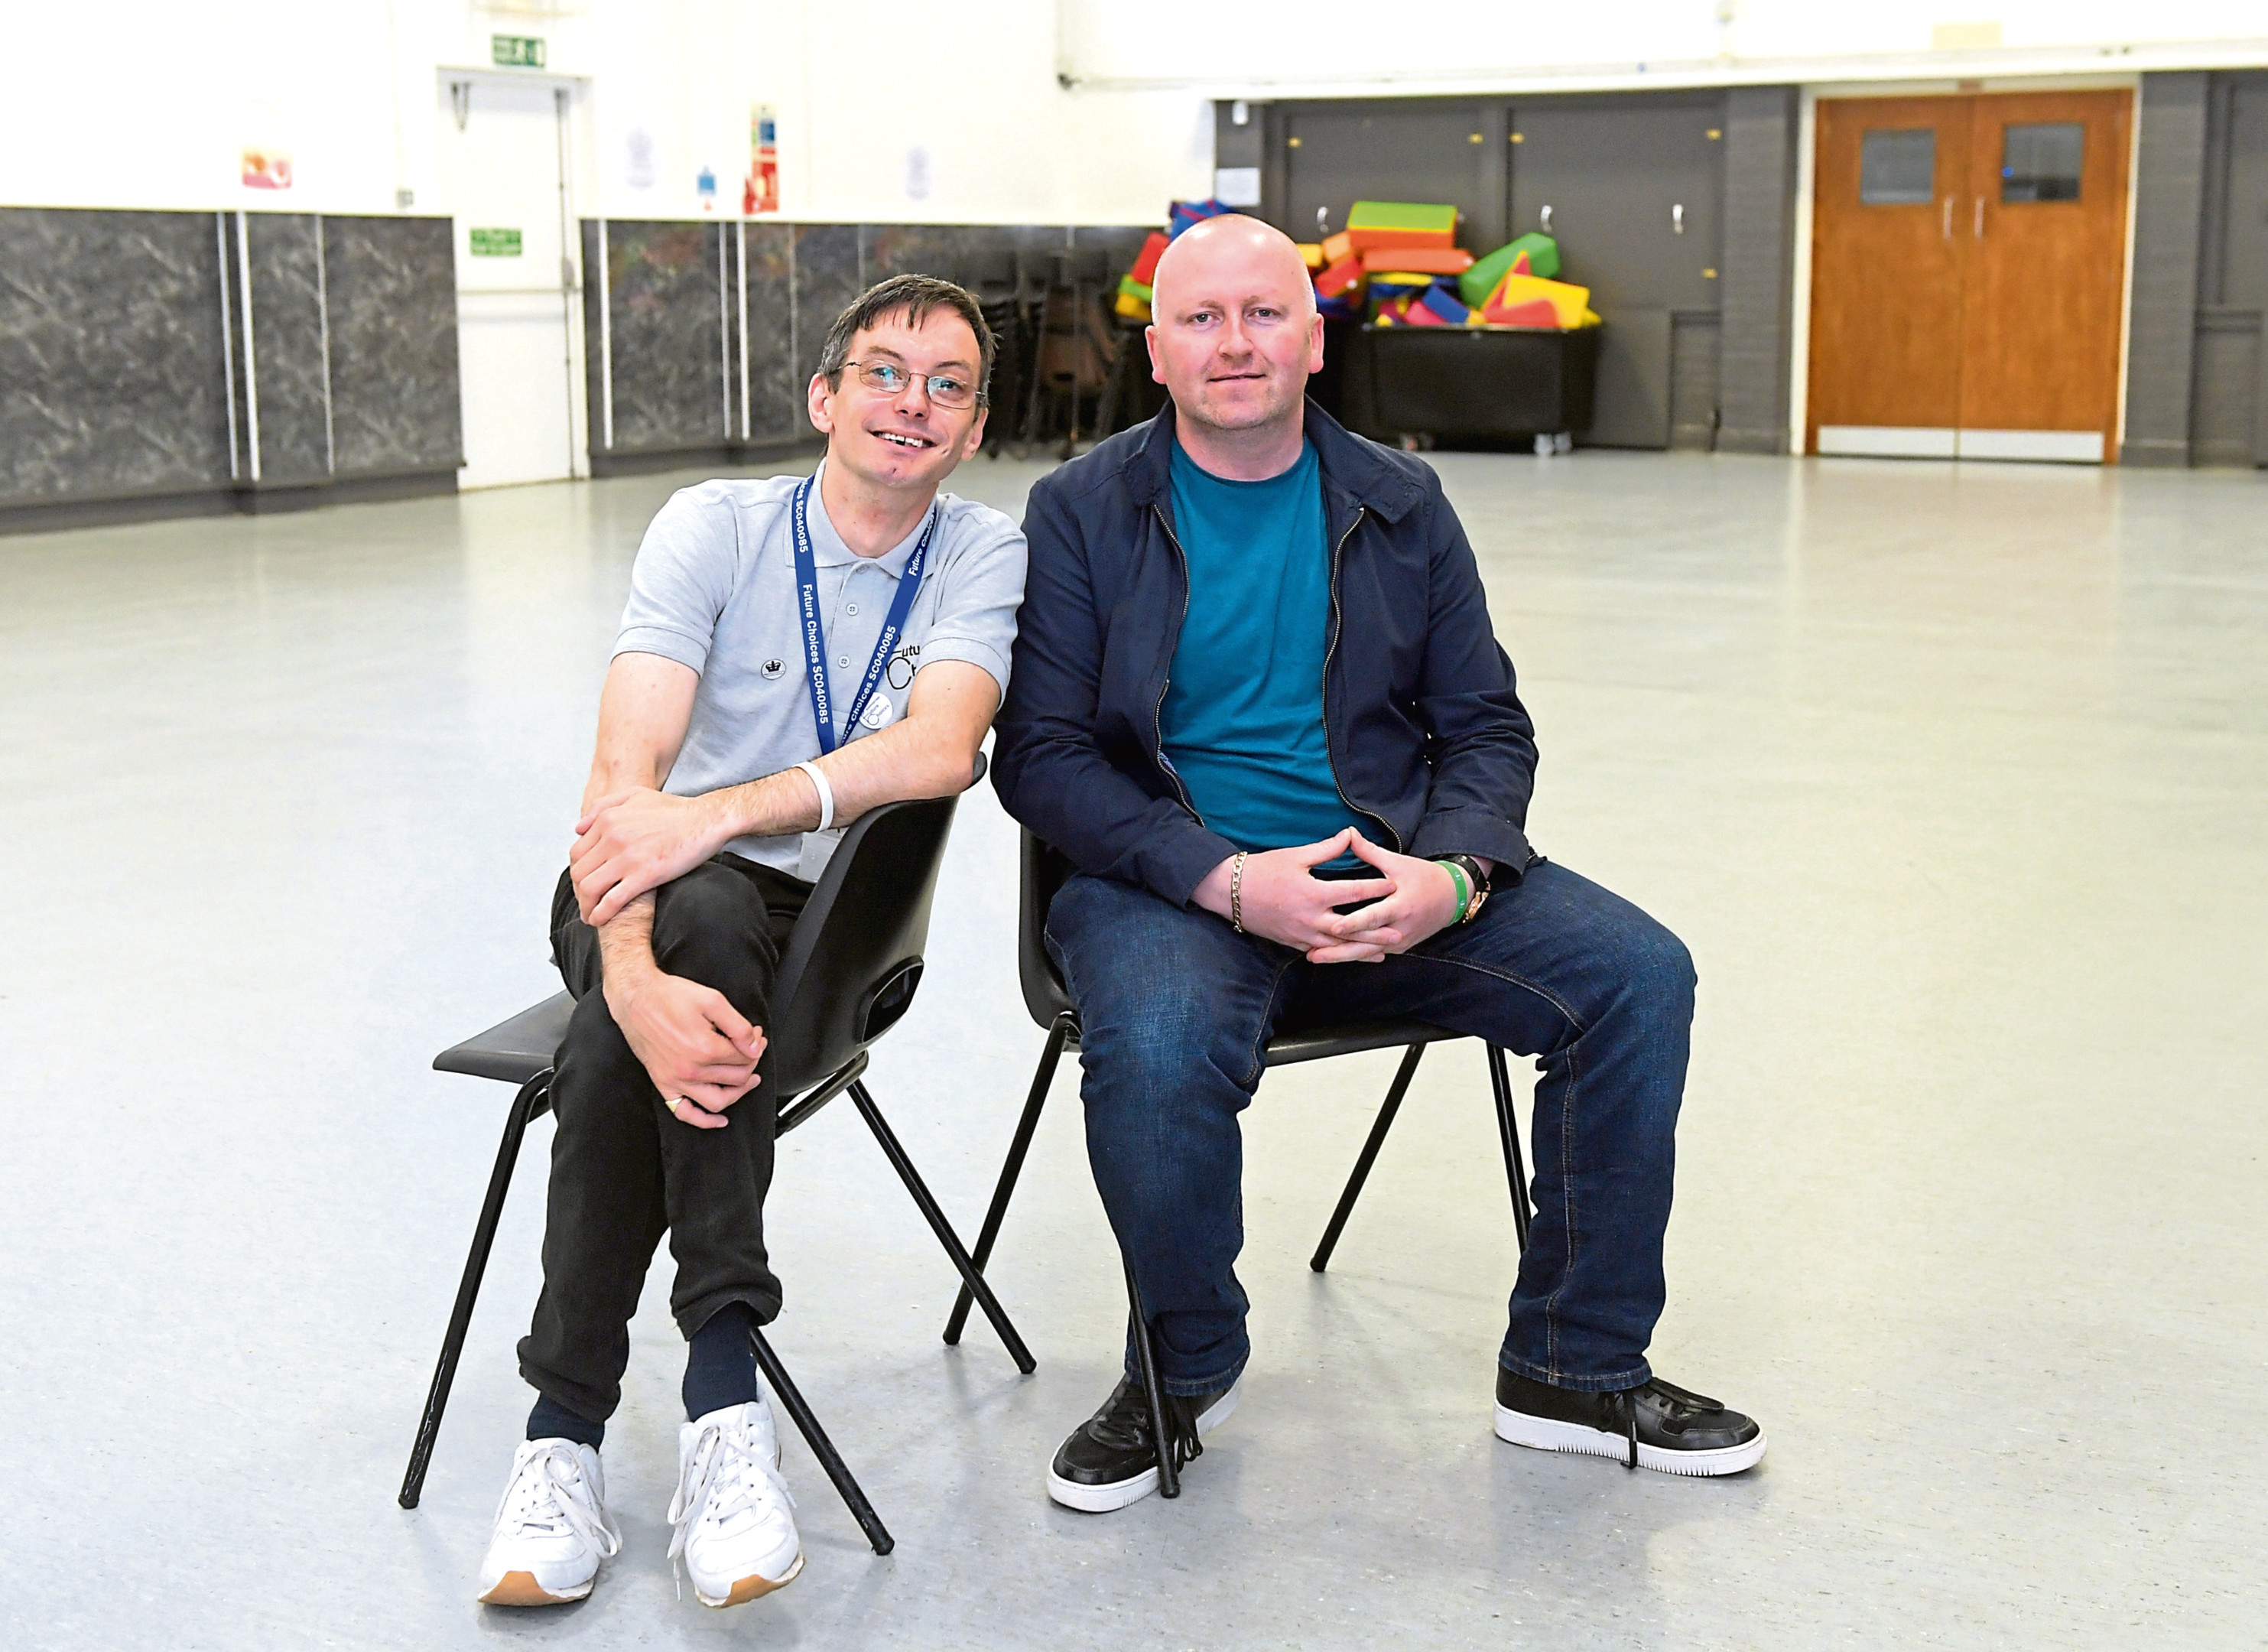 David Forbes and Paul O'Connor at Inchgarth Community Centre